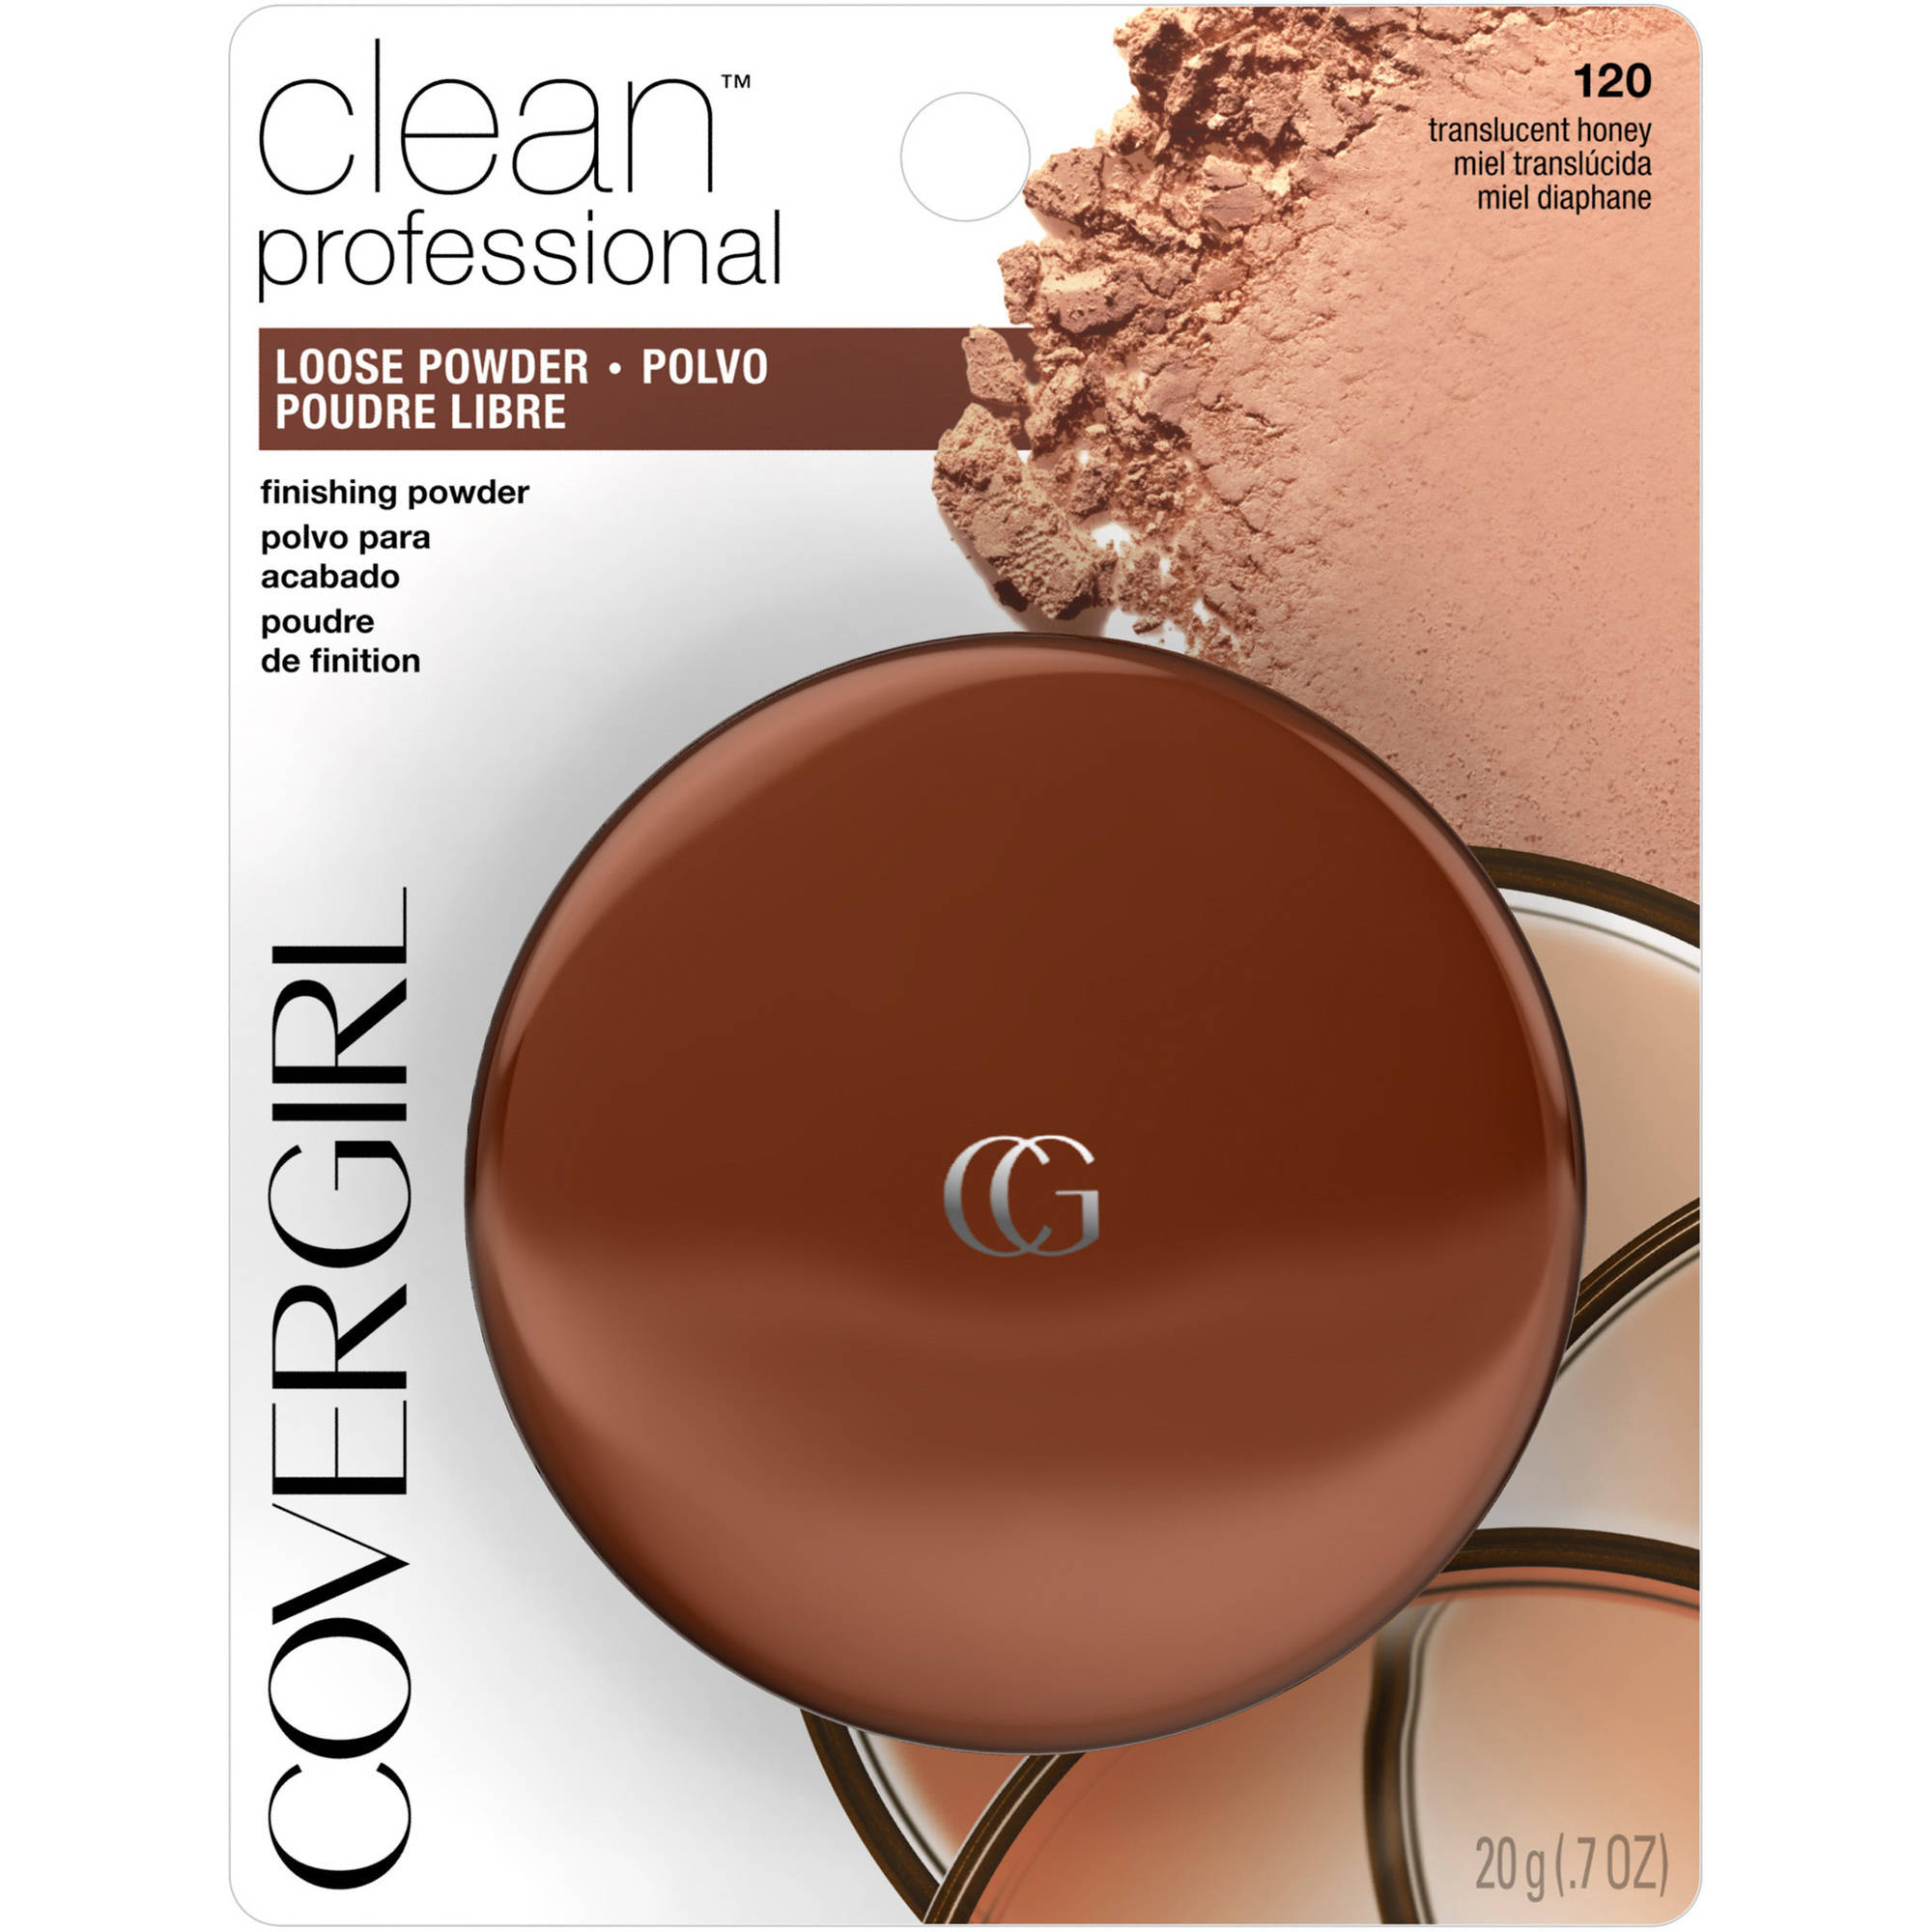 COVERGIRL Professional Translucent Face Powder Translucent Honey 120, 0.7 oz